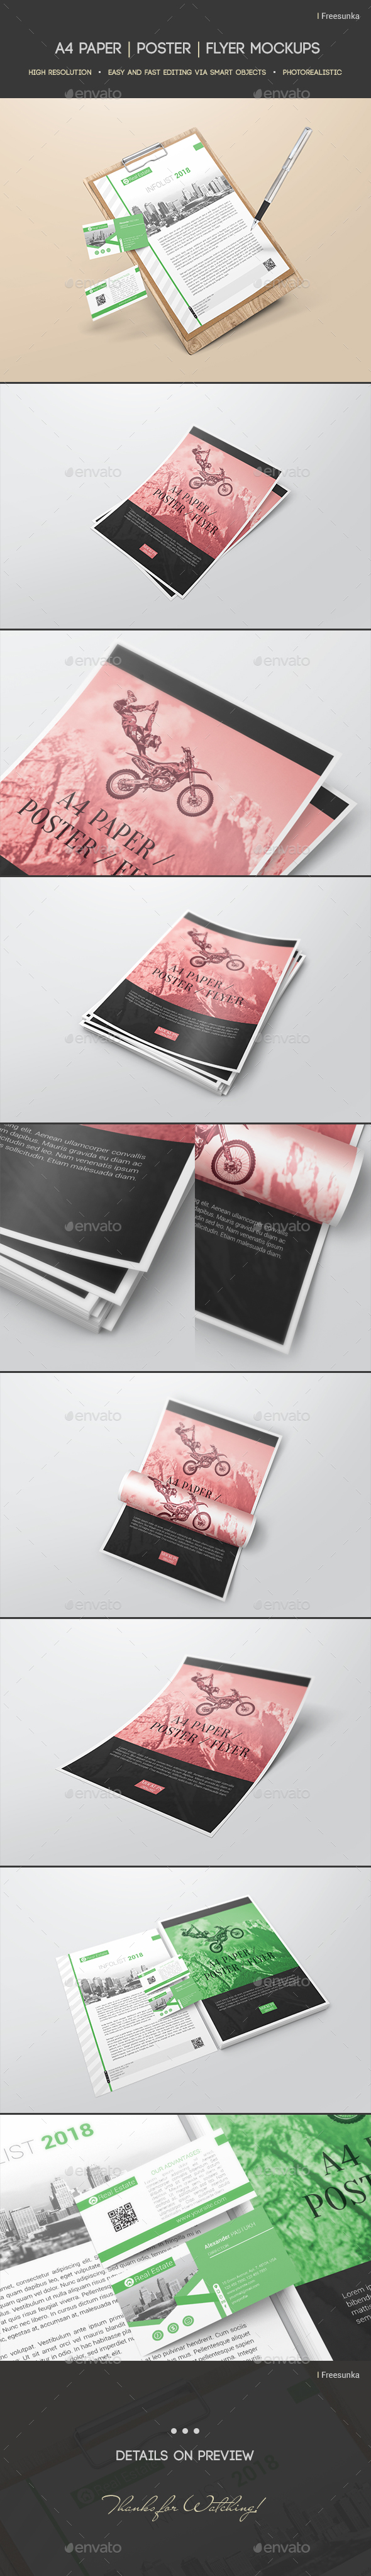 A4 Paper /  Poster / Flyer Mockups - Flyers Print